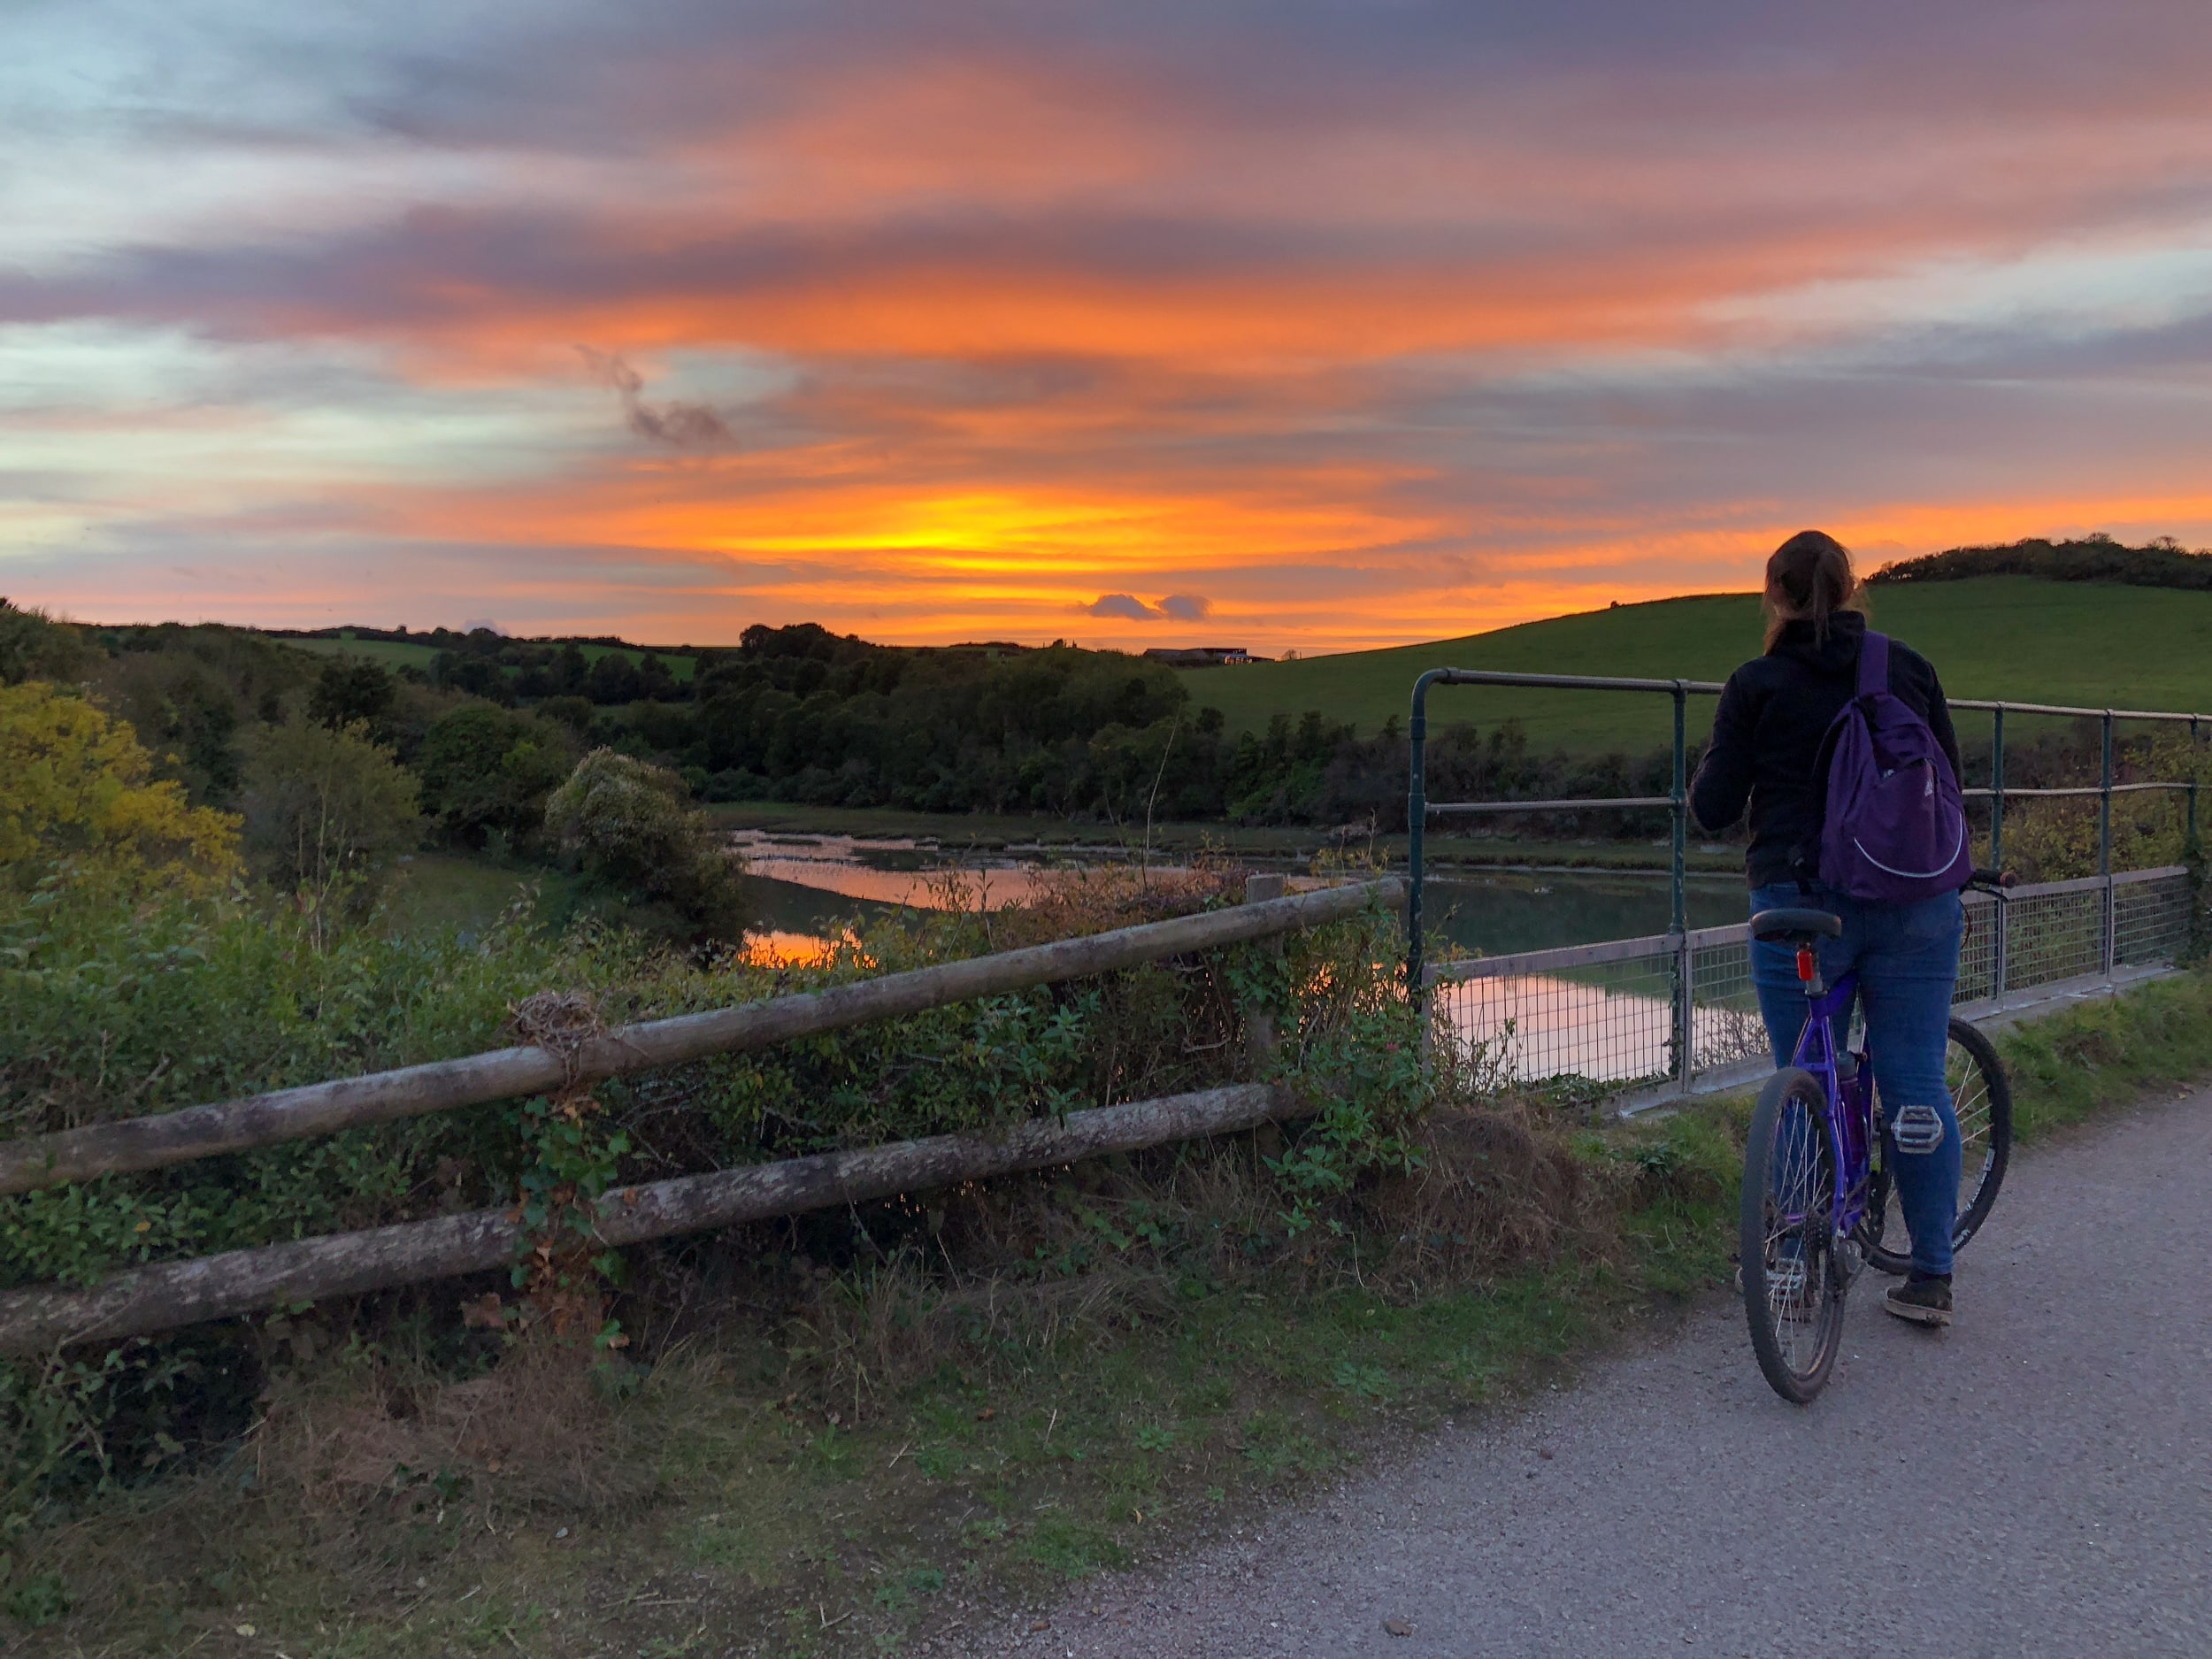 Sunset on the Camel Trail (Wadebridge to Padstow)